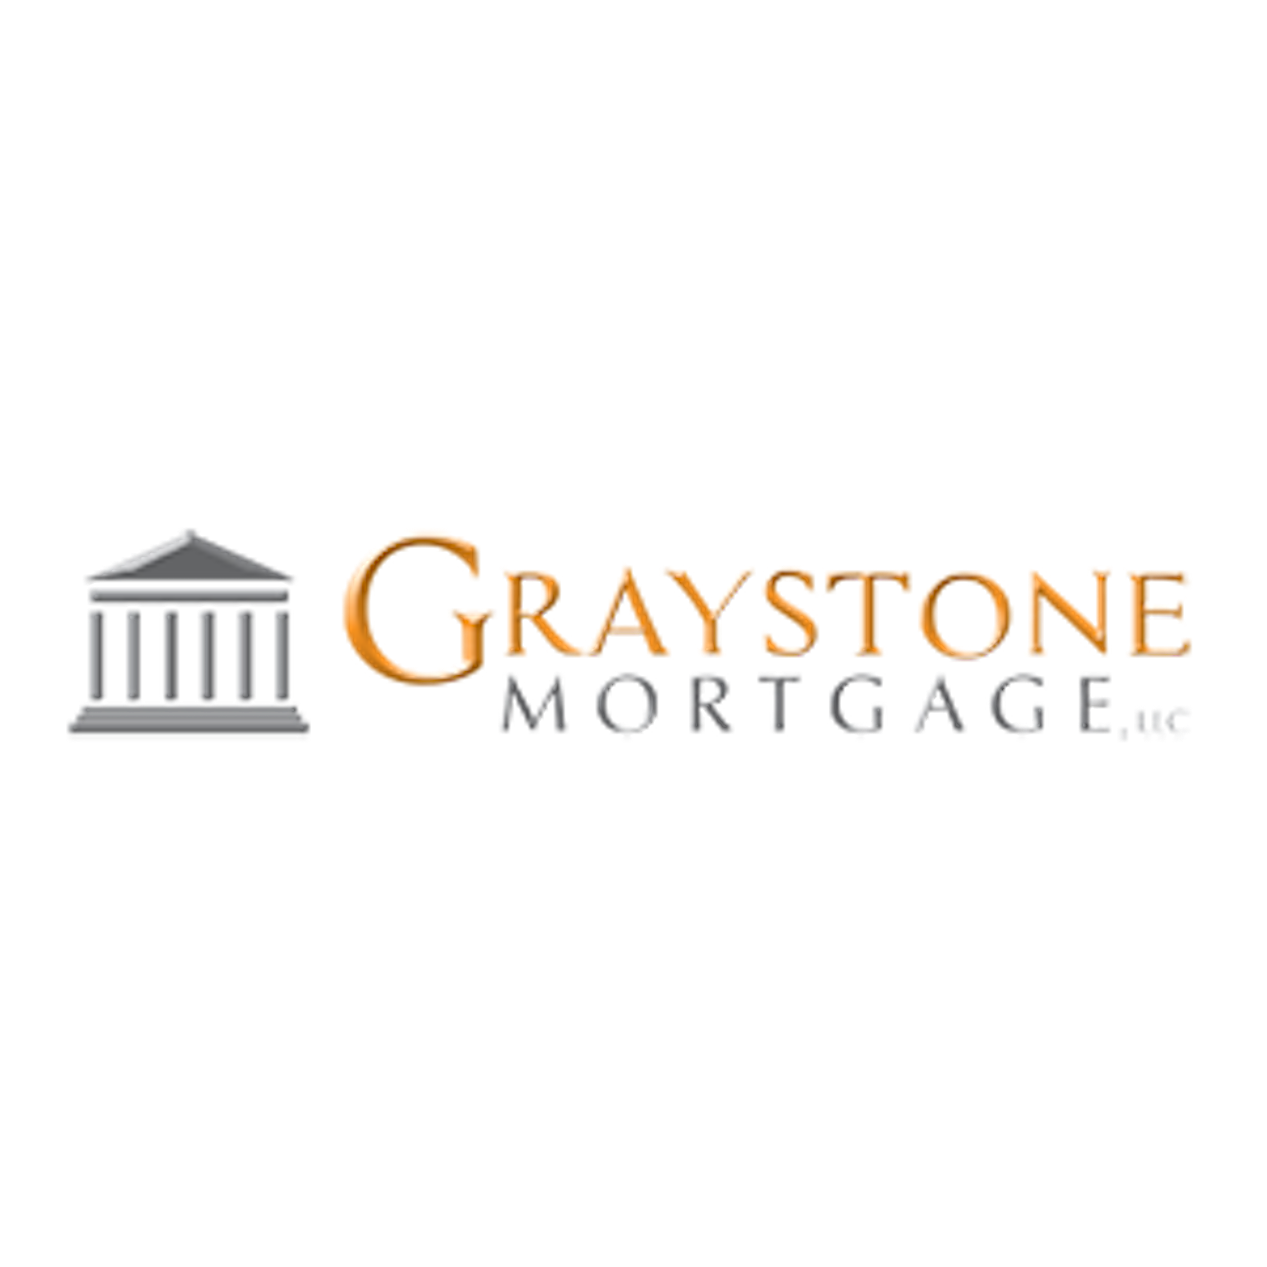 Kathie Wittmer - Graystone Mortgage Group